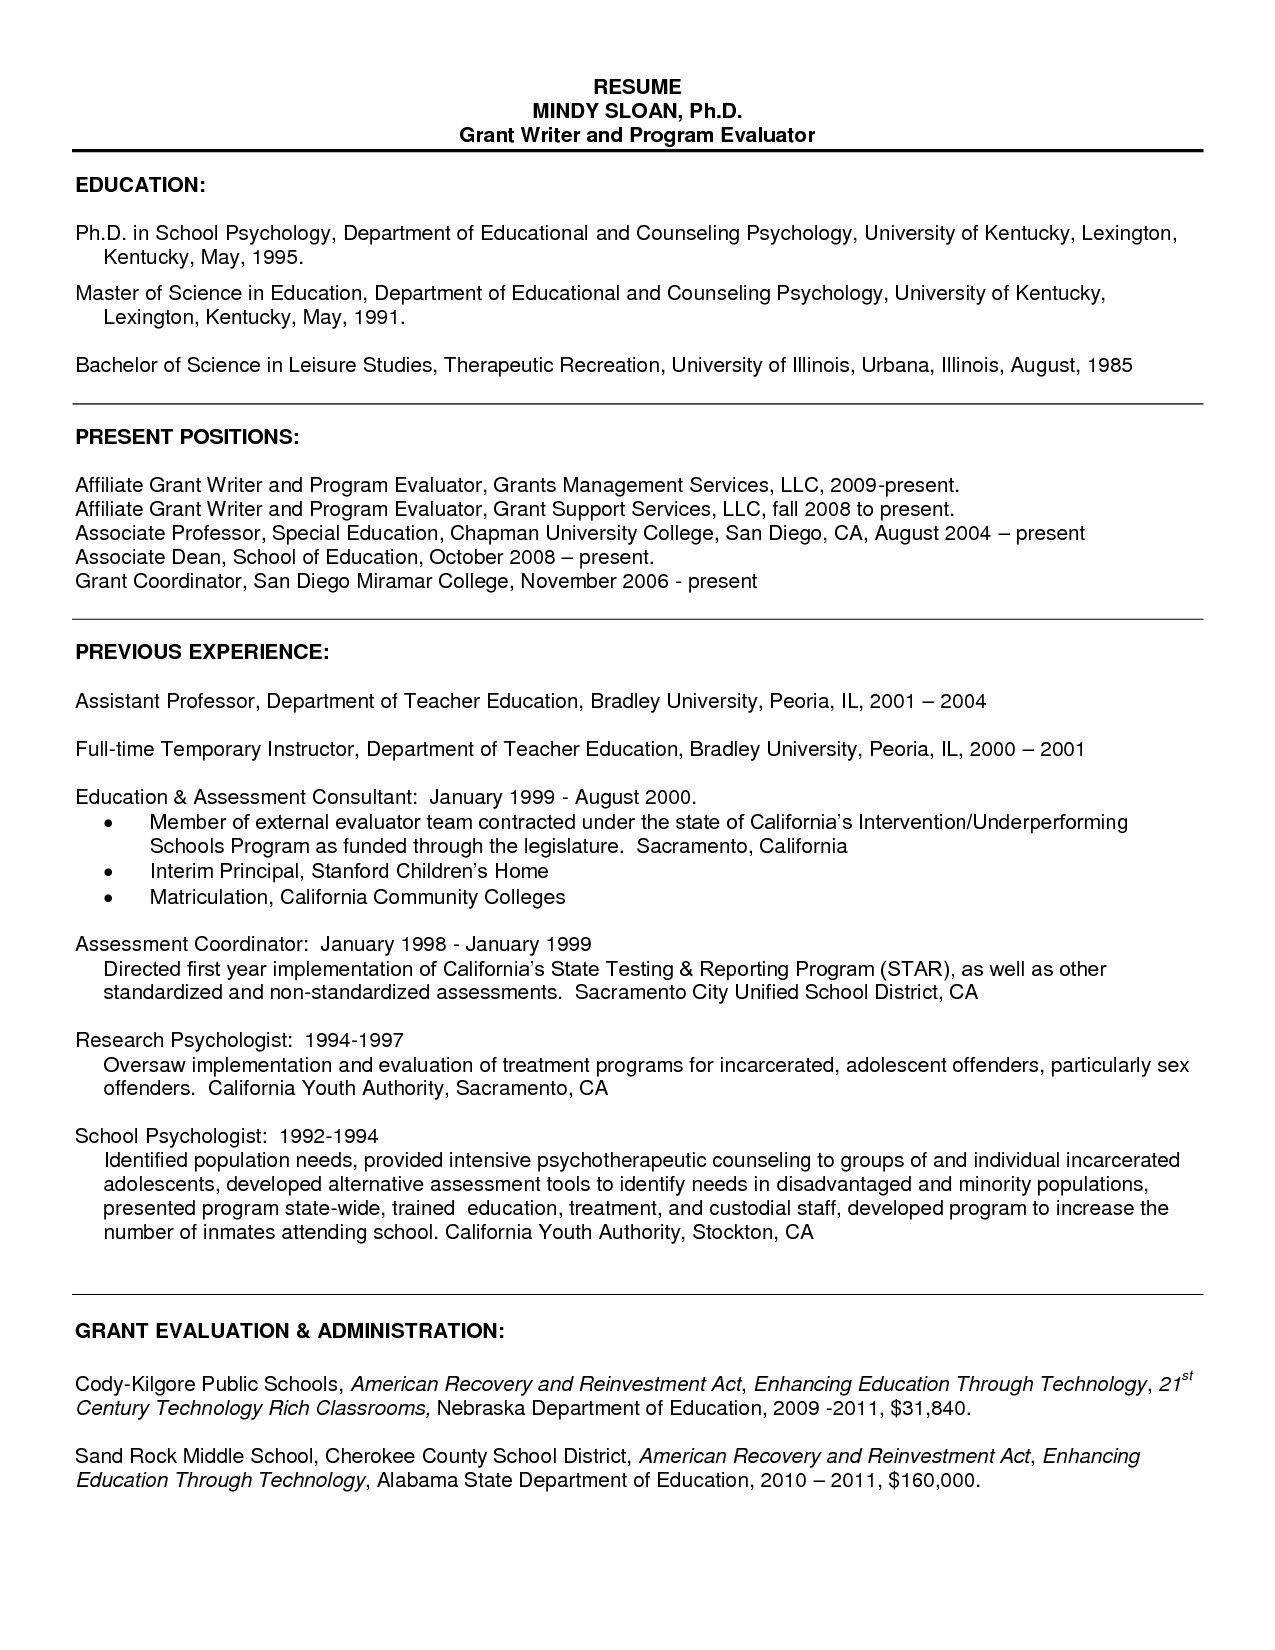 Pin by Youa Lor on Resume/Letter of Reference | Sample resume format ...